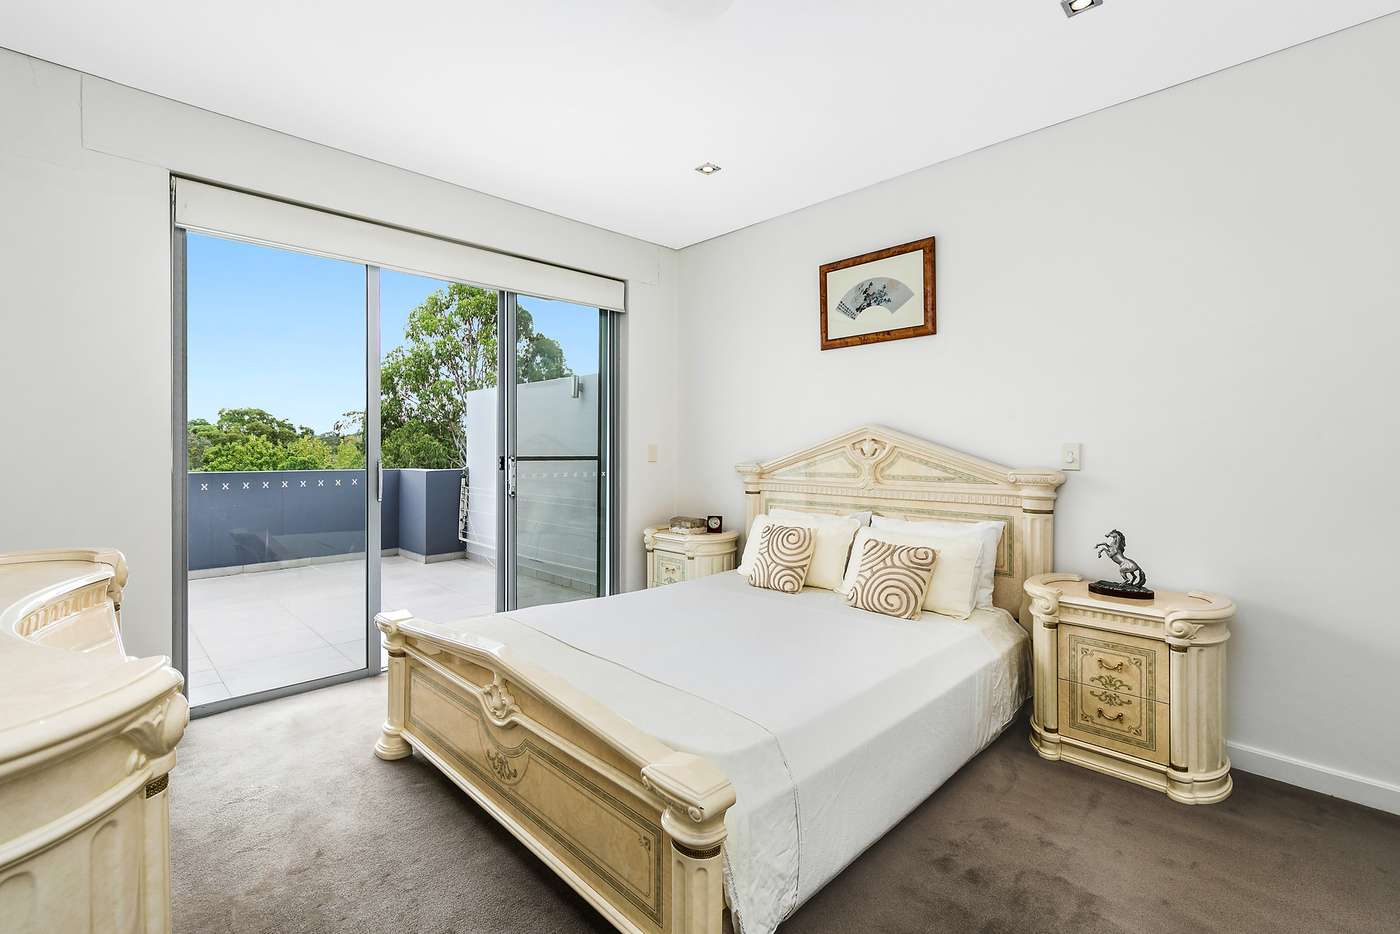 Sixth view of Homely apartment listing, 502/2-8 Burleigh Street, Lindfield NSW 2070